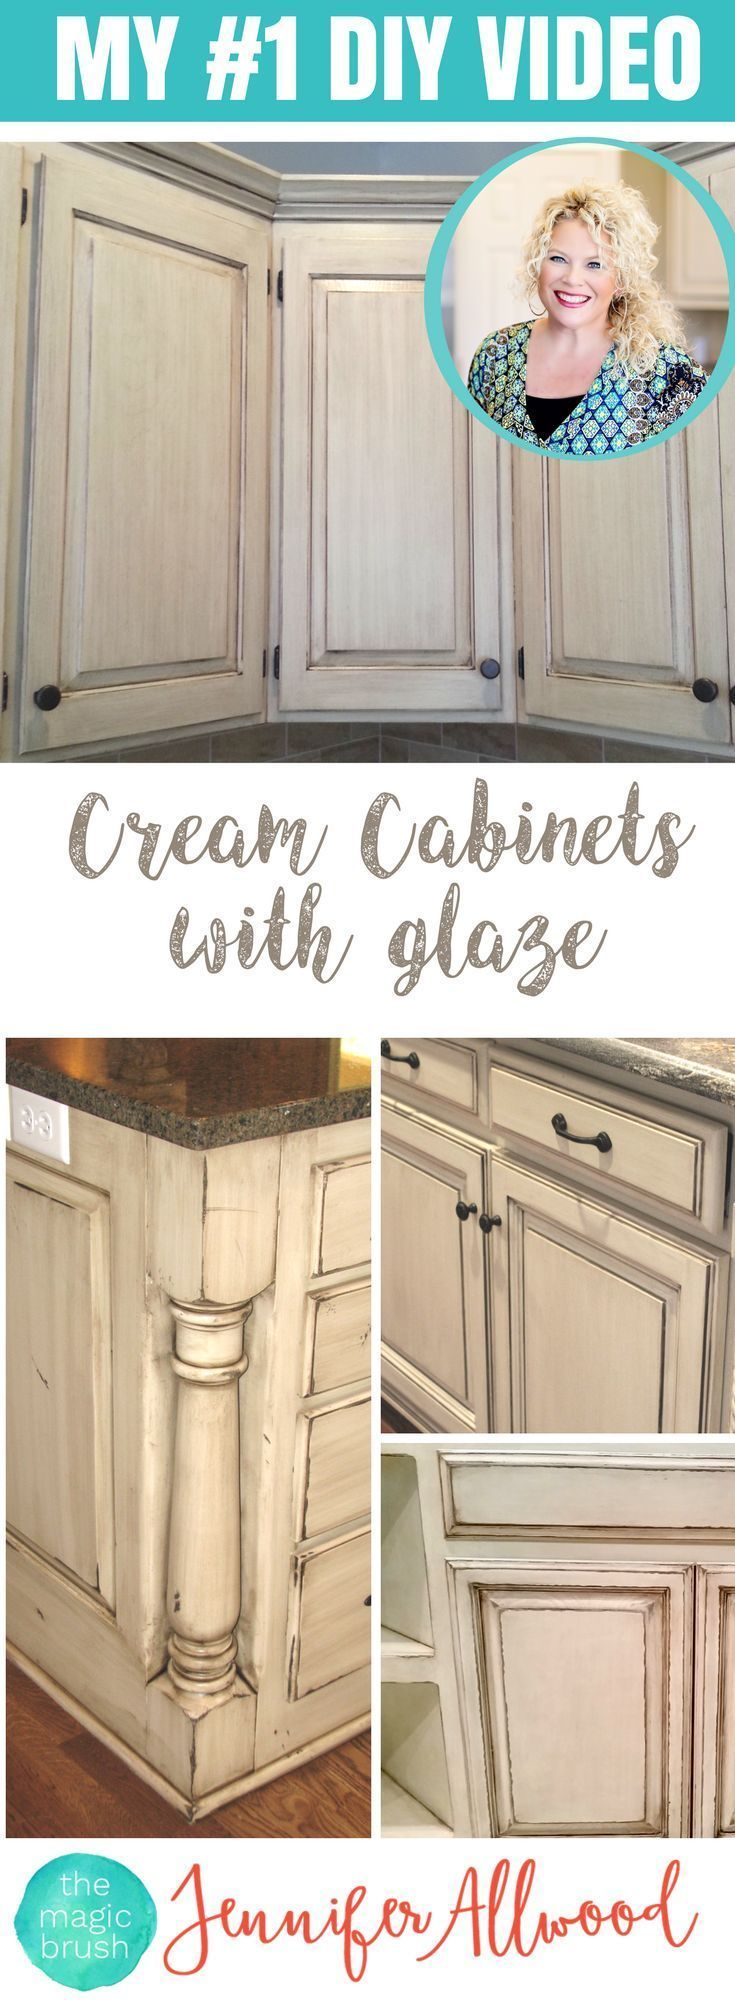 How To Paint Cream Cabinets With Glaze This Is My 1 Selling Diy Video For Updating Your Kitchen With Paint Shabby Chic Kitchen Chic Kitchen Shabby Chic Homes